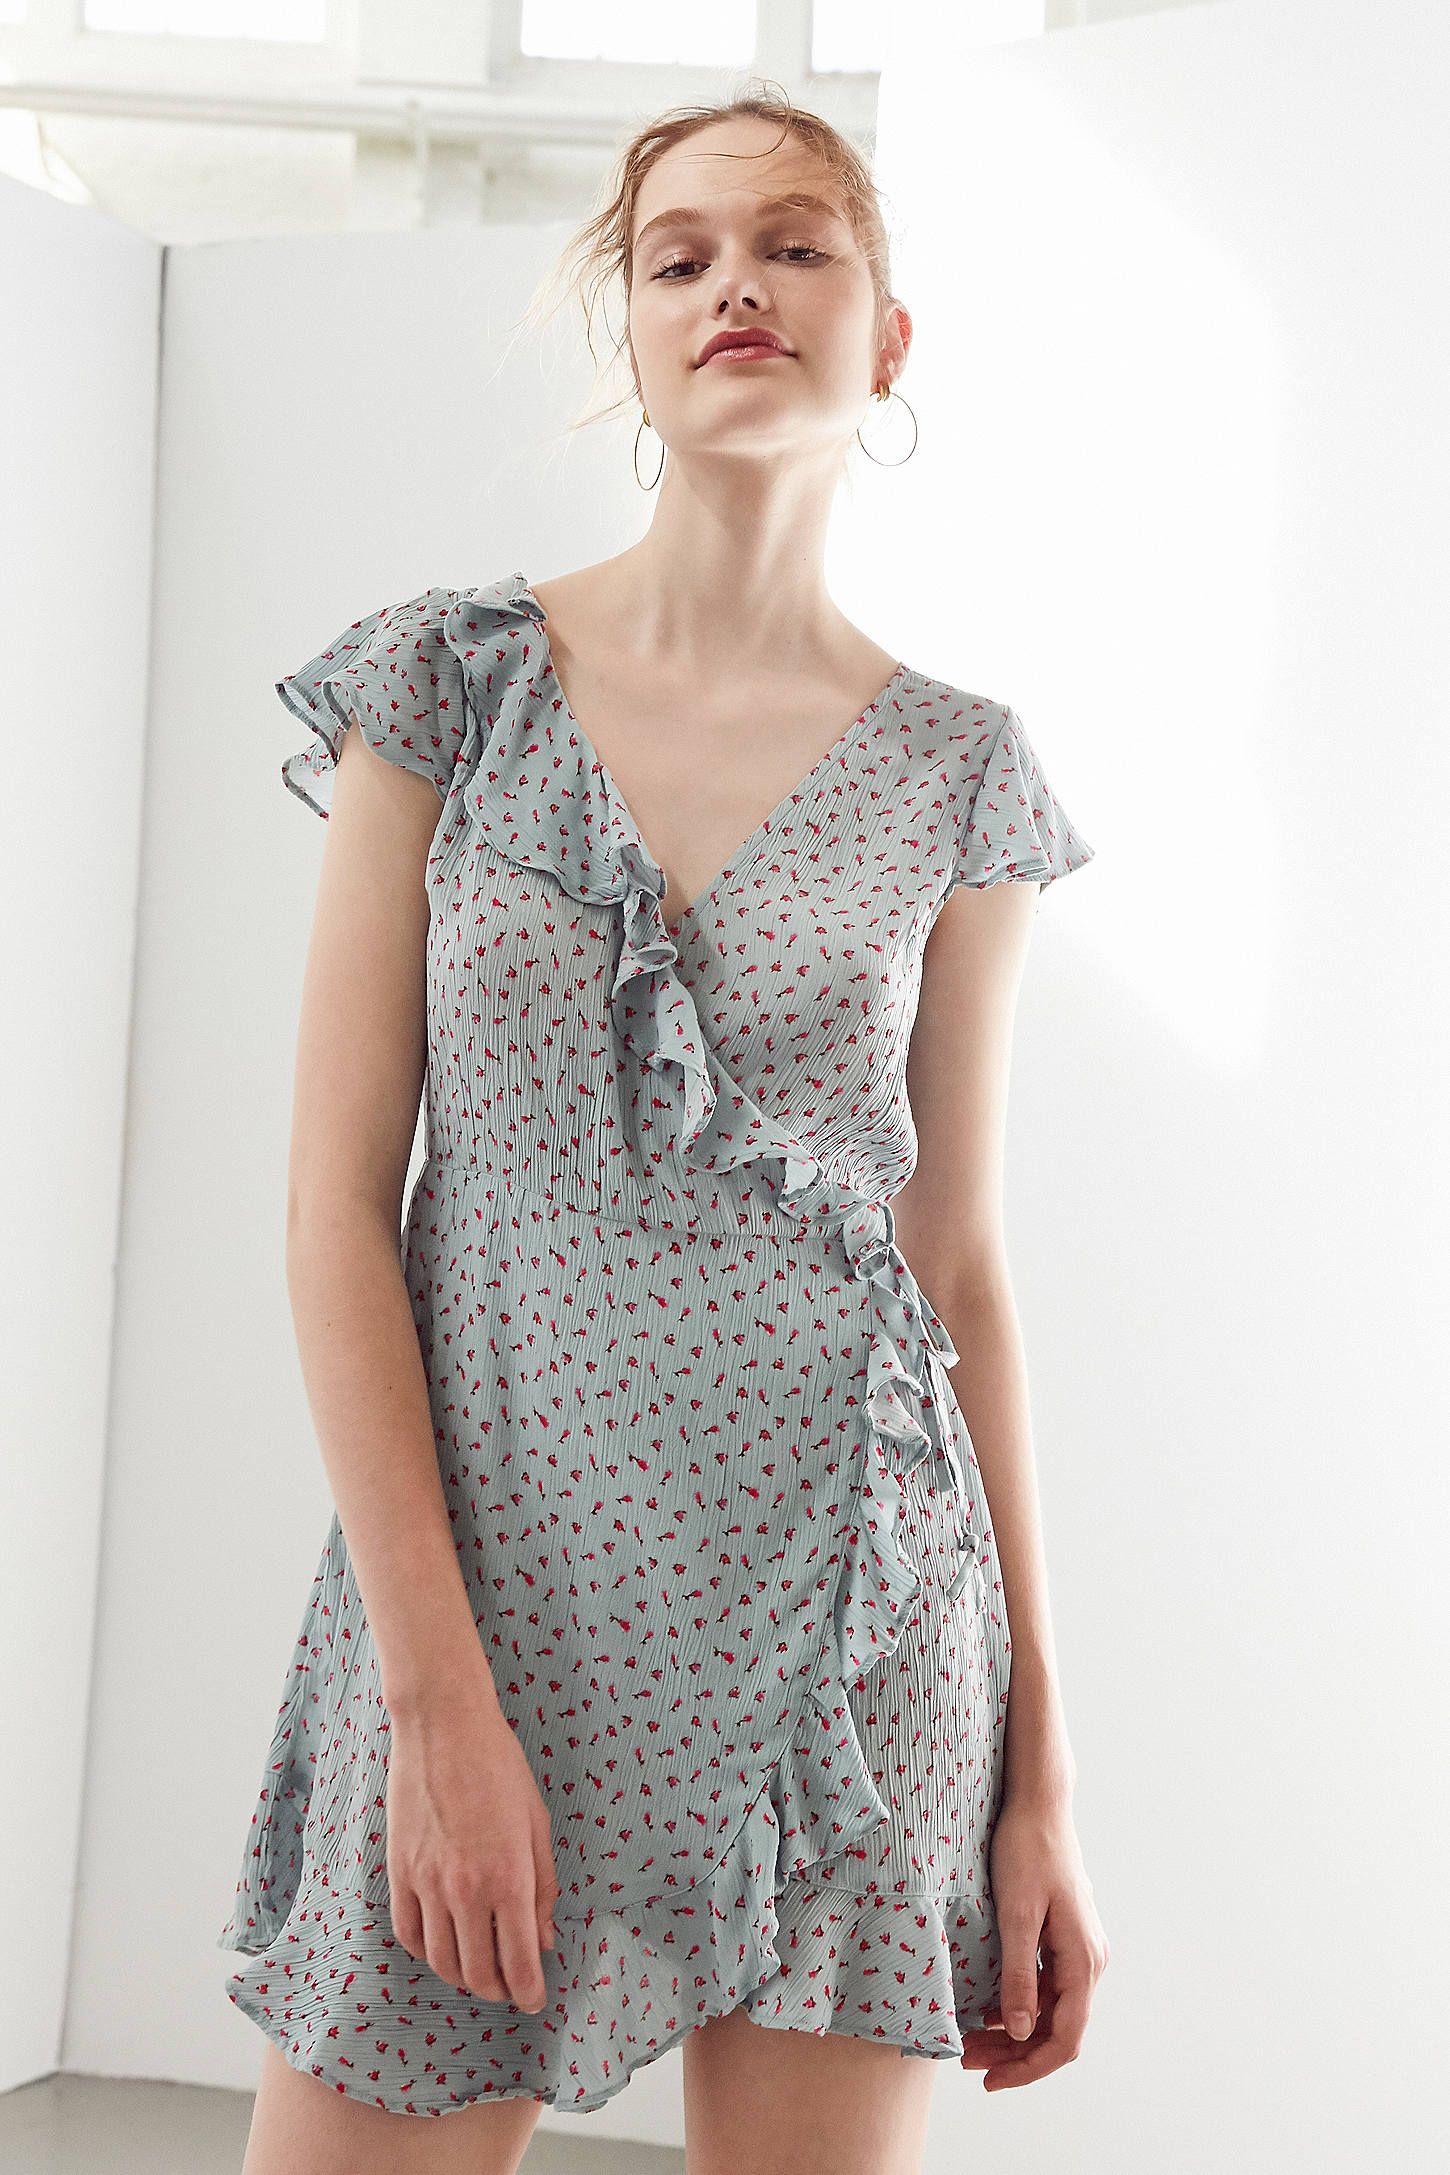 Pins And Needles Clothing Awesome Pins And Needles Ruffle Wrap Dress  Wrap Dresses Ruffles And Decorating Design